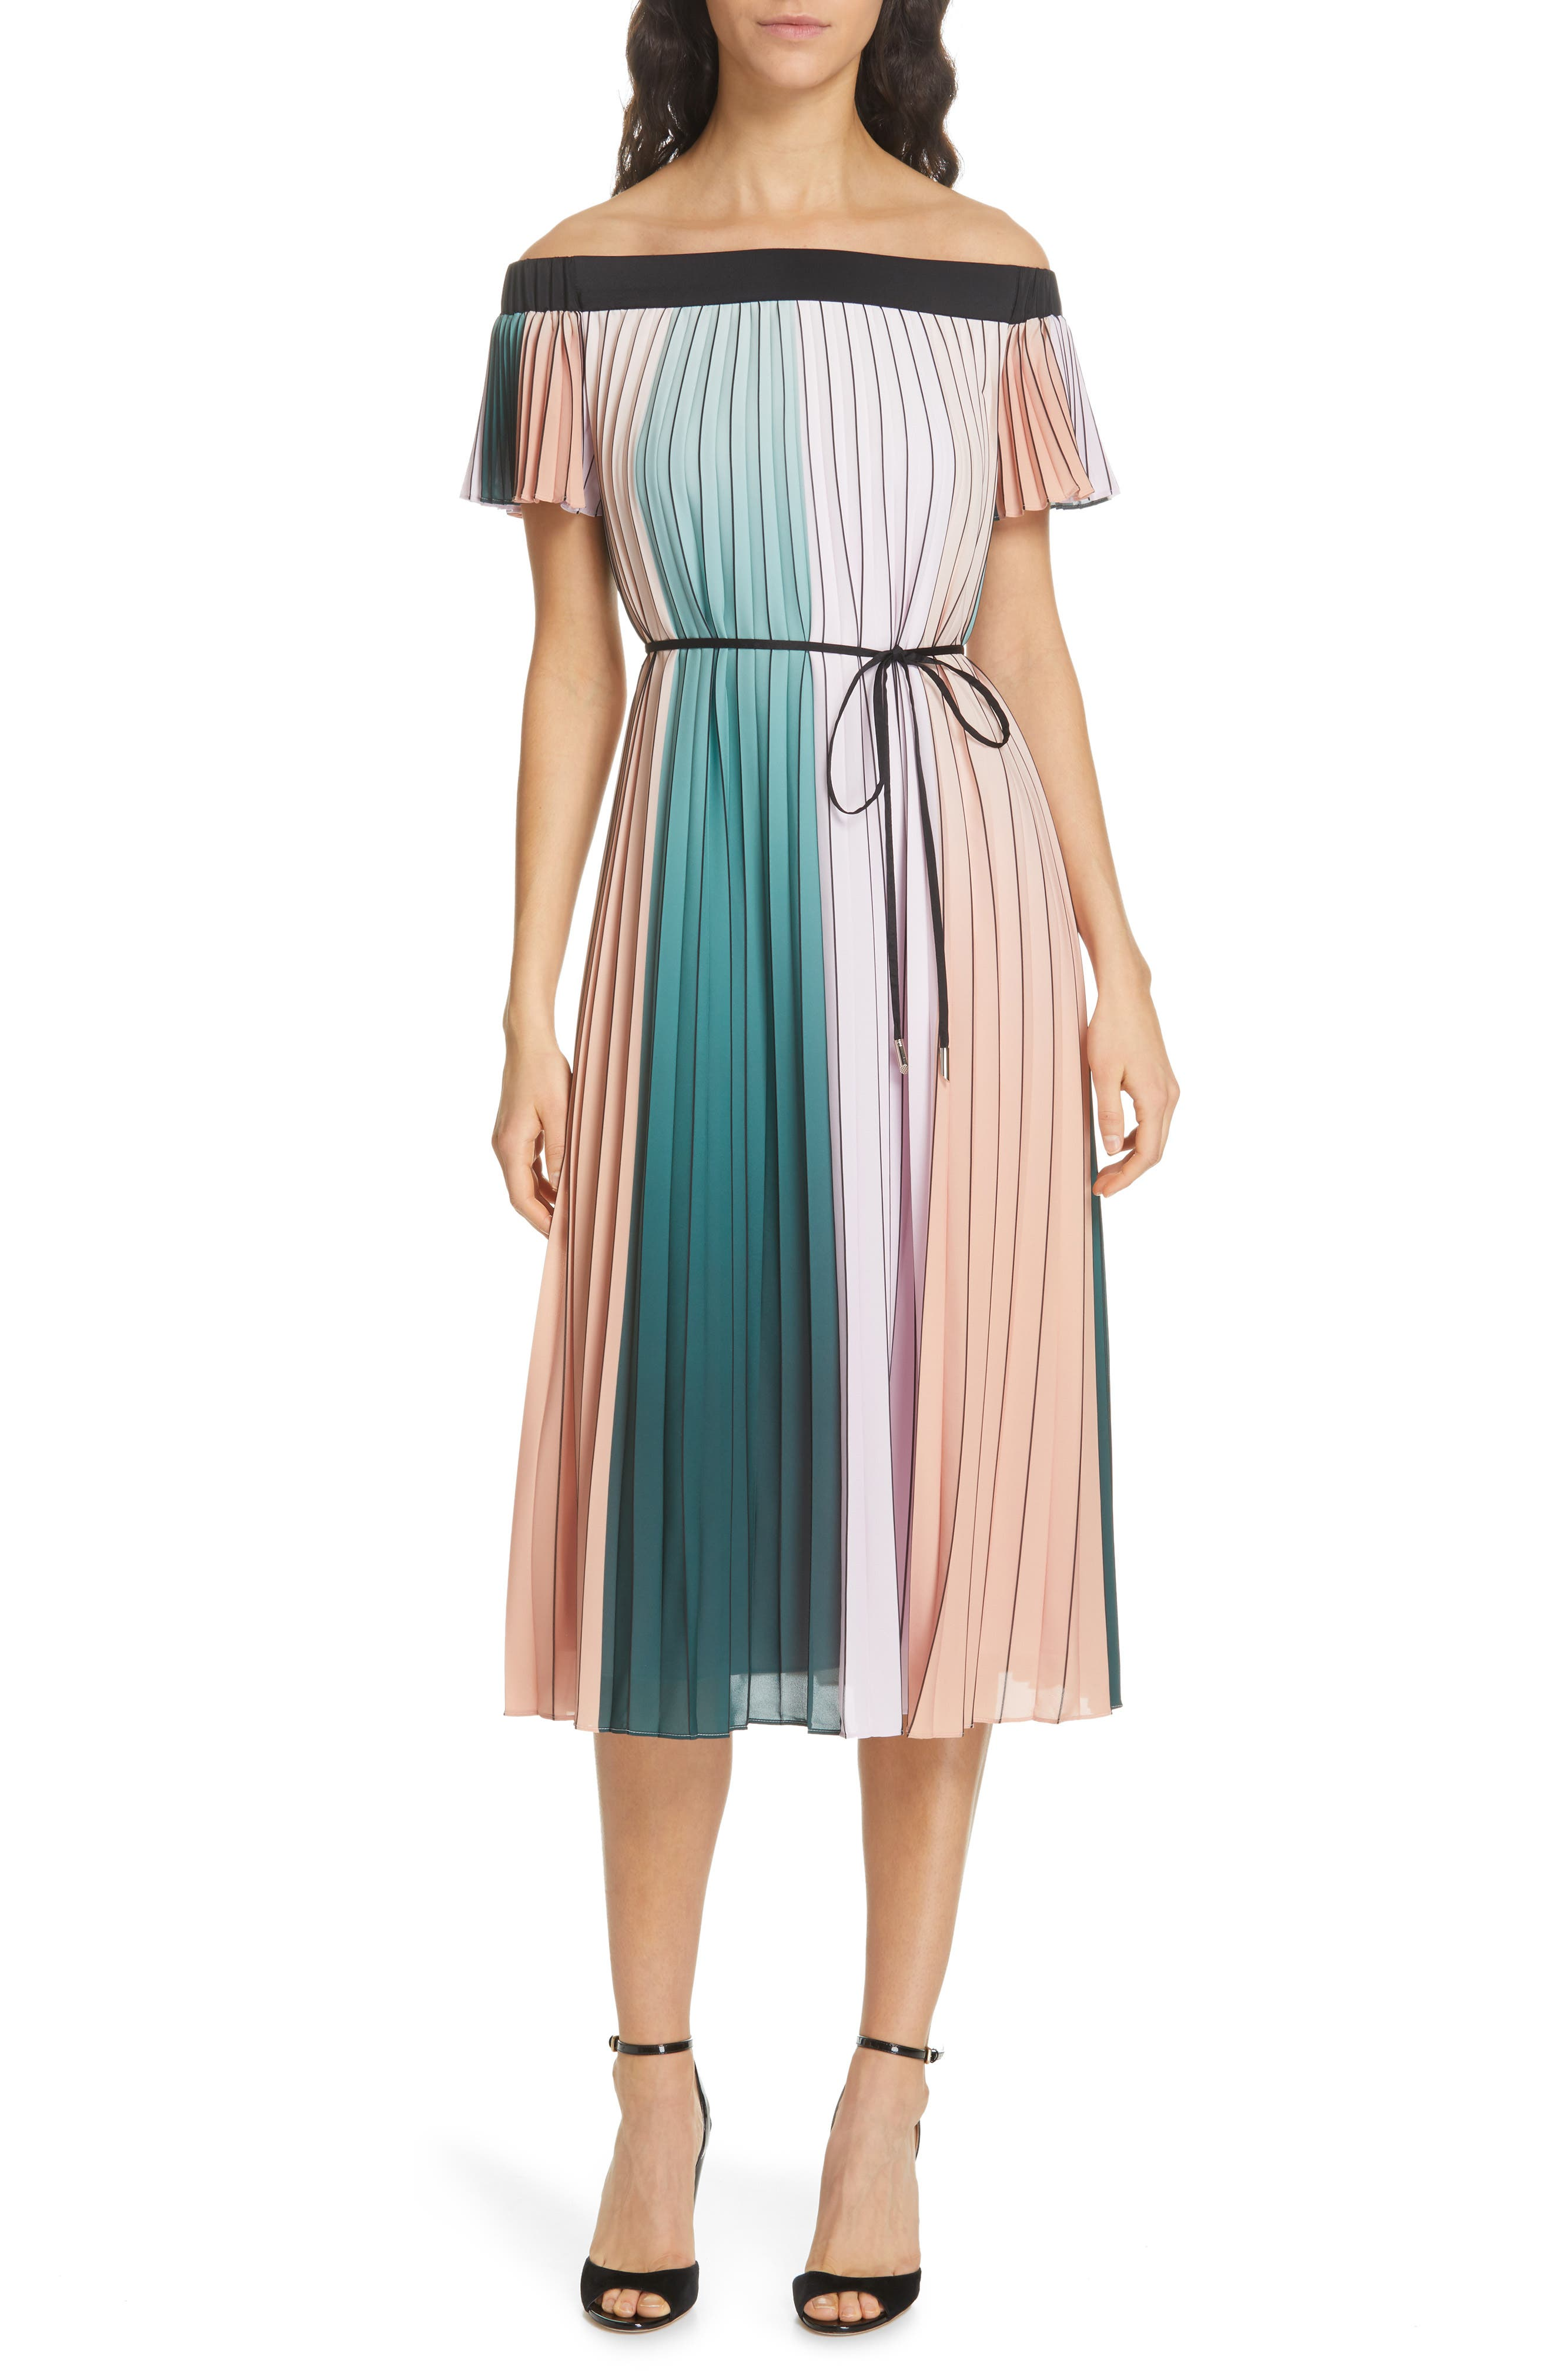 TED BAKER LONDON Fernee Colorblock Pleated Dress, Main, color, LILAC